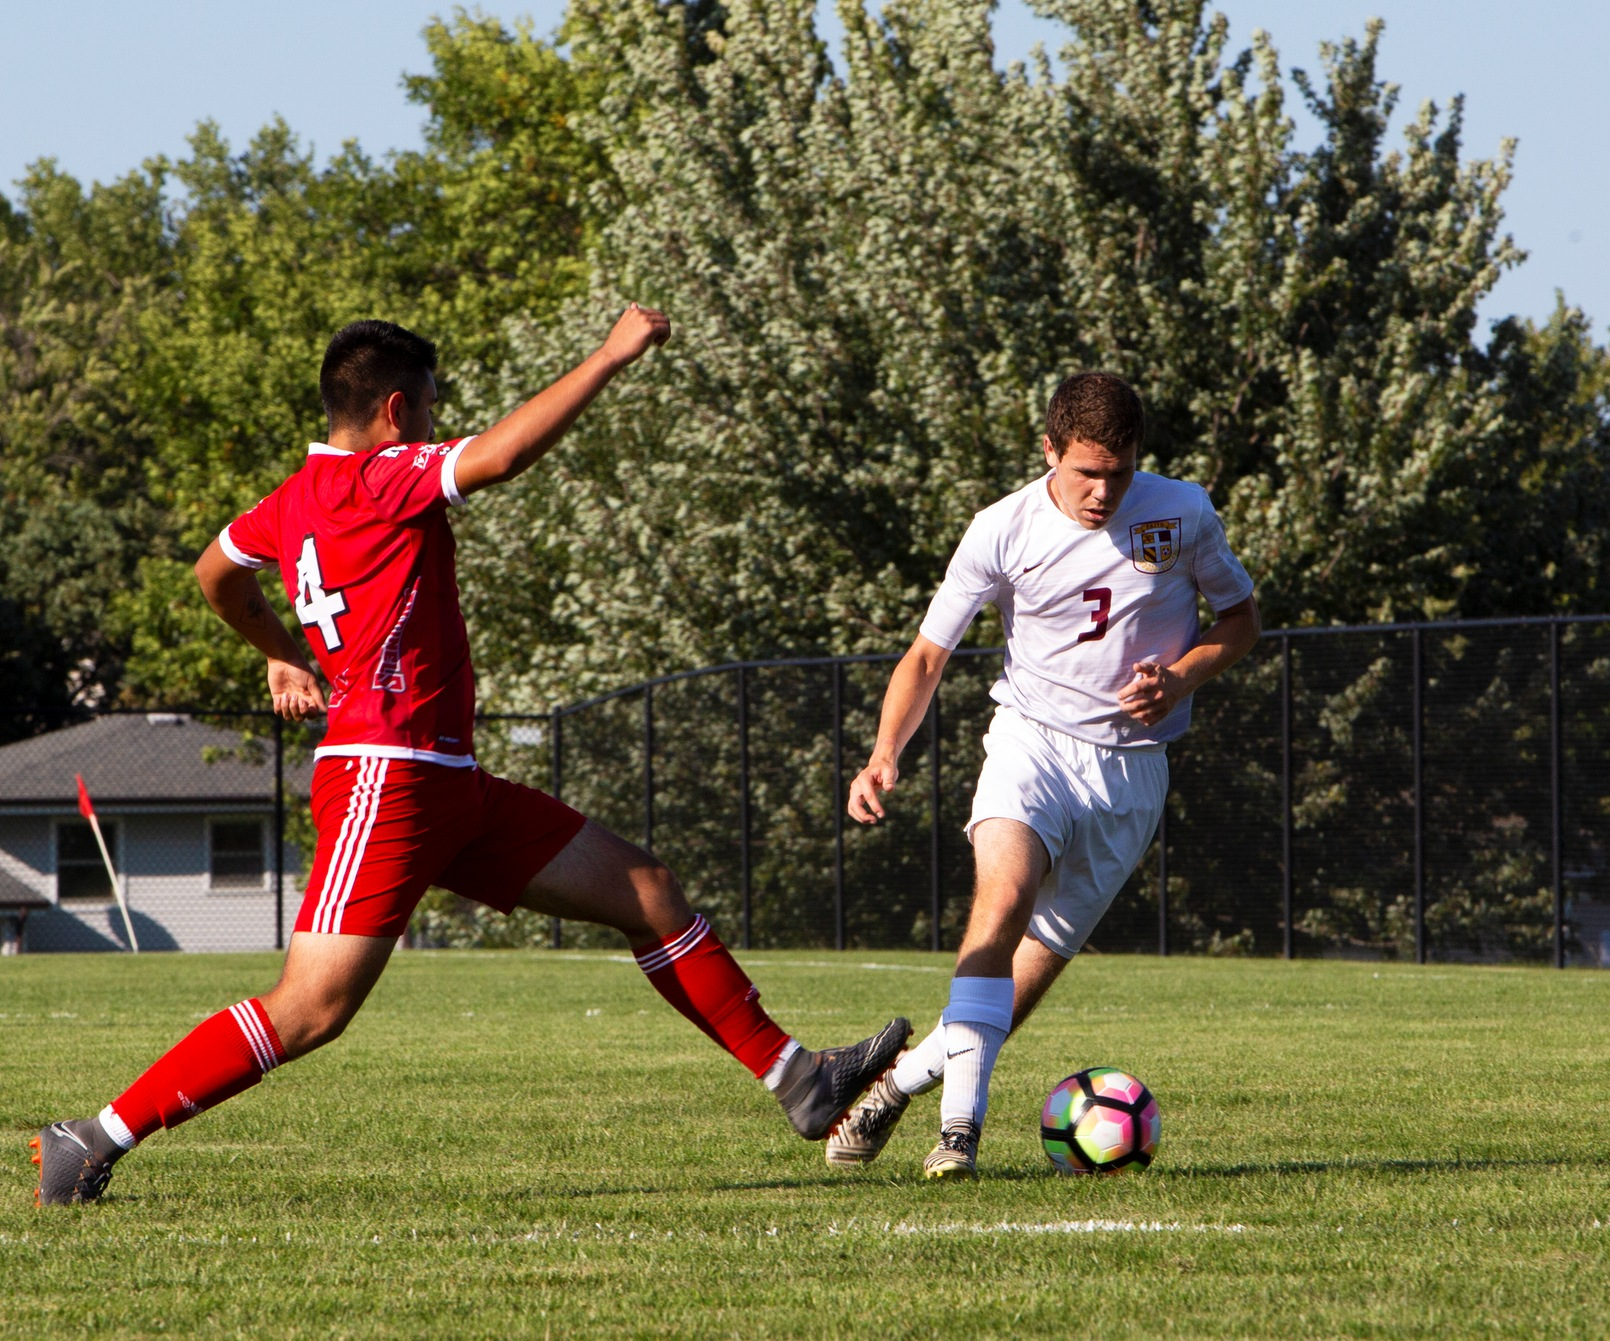 Faith sophomore Jacob Stilwell eludes a Nebraska Christian defender. The Eagles won, 3-1, to improve to 2-1 on the season.